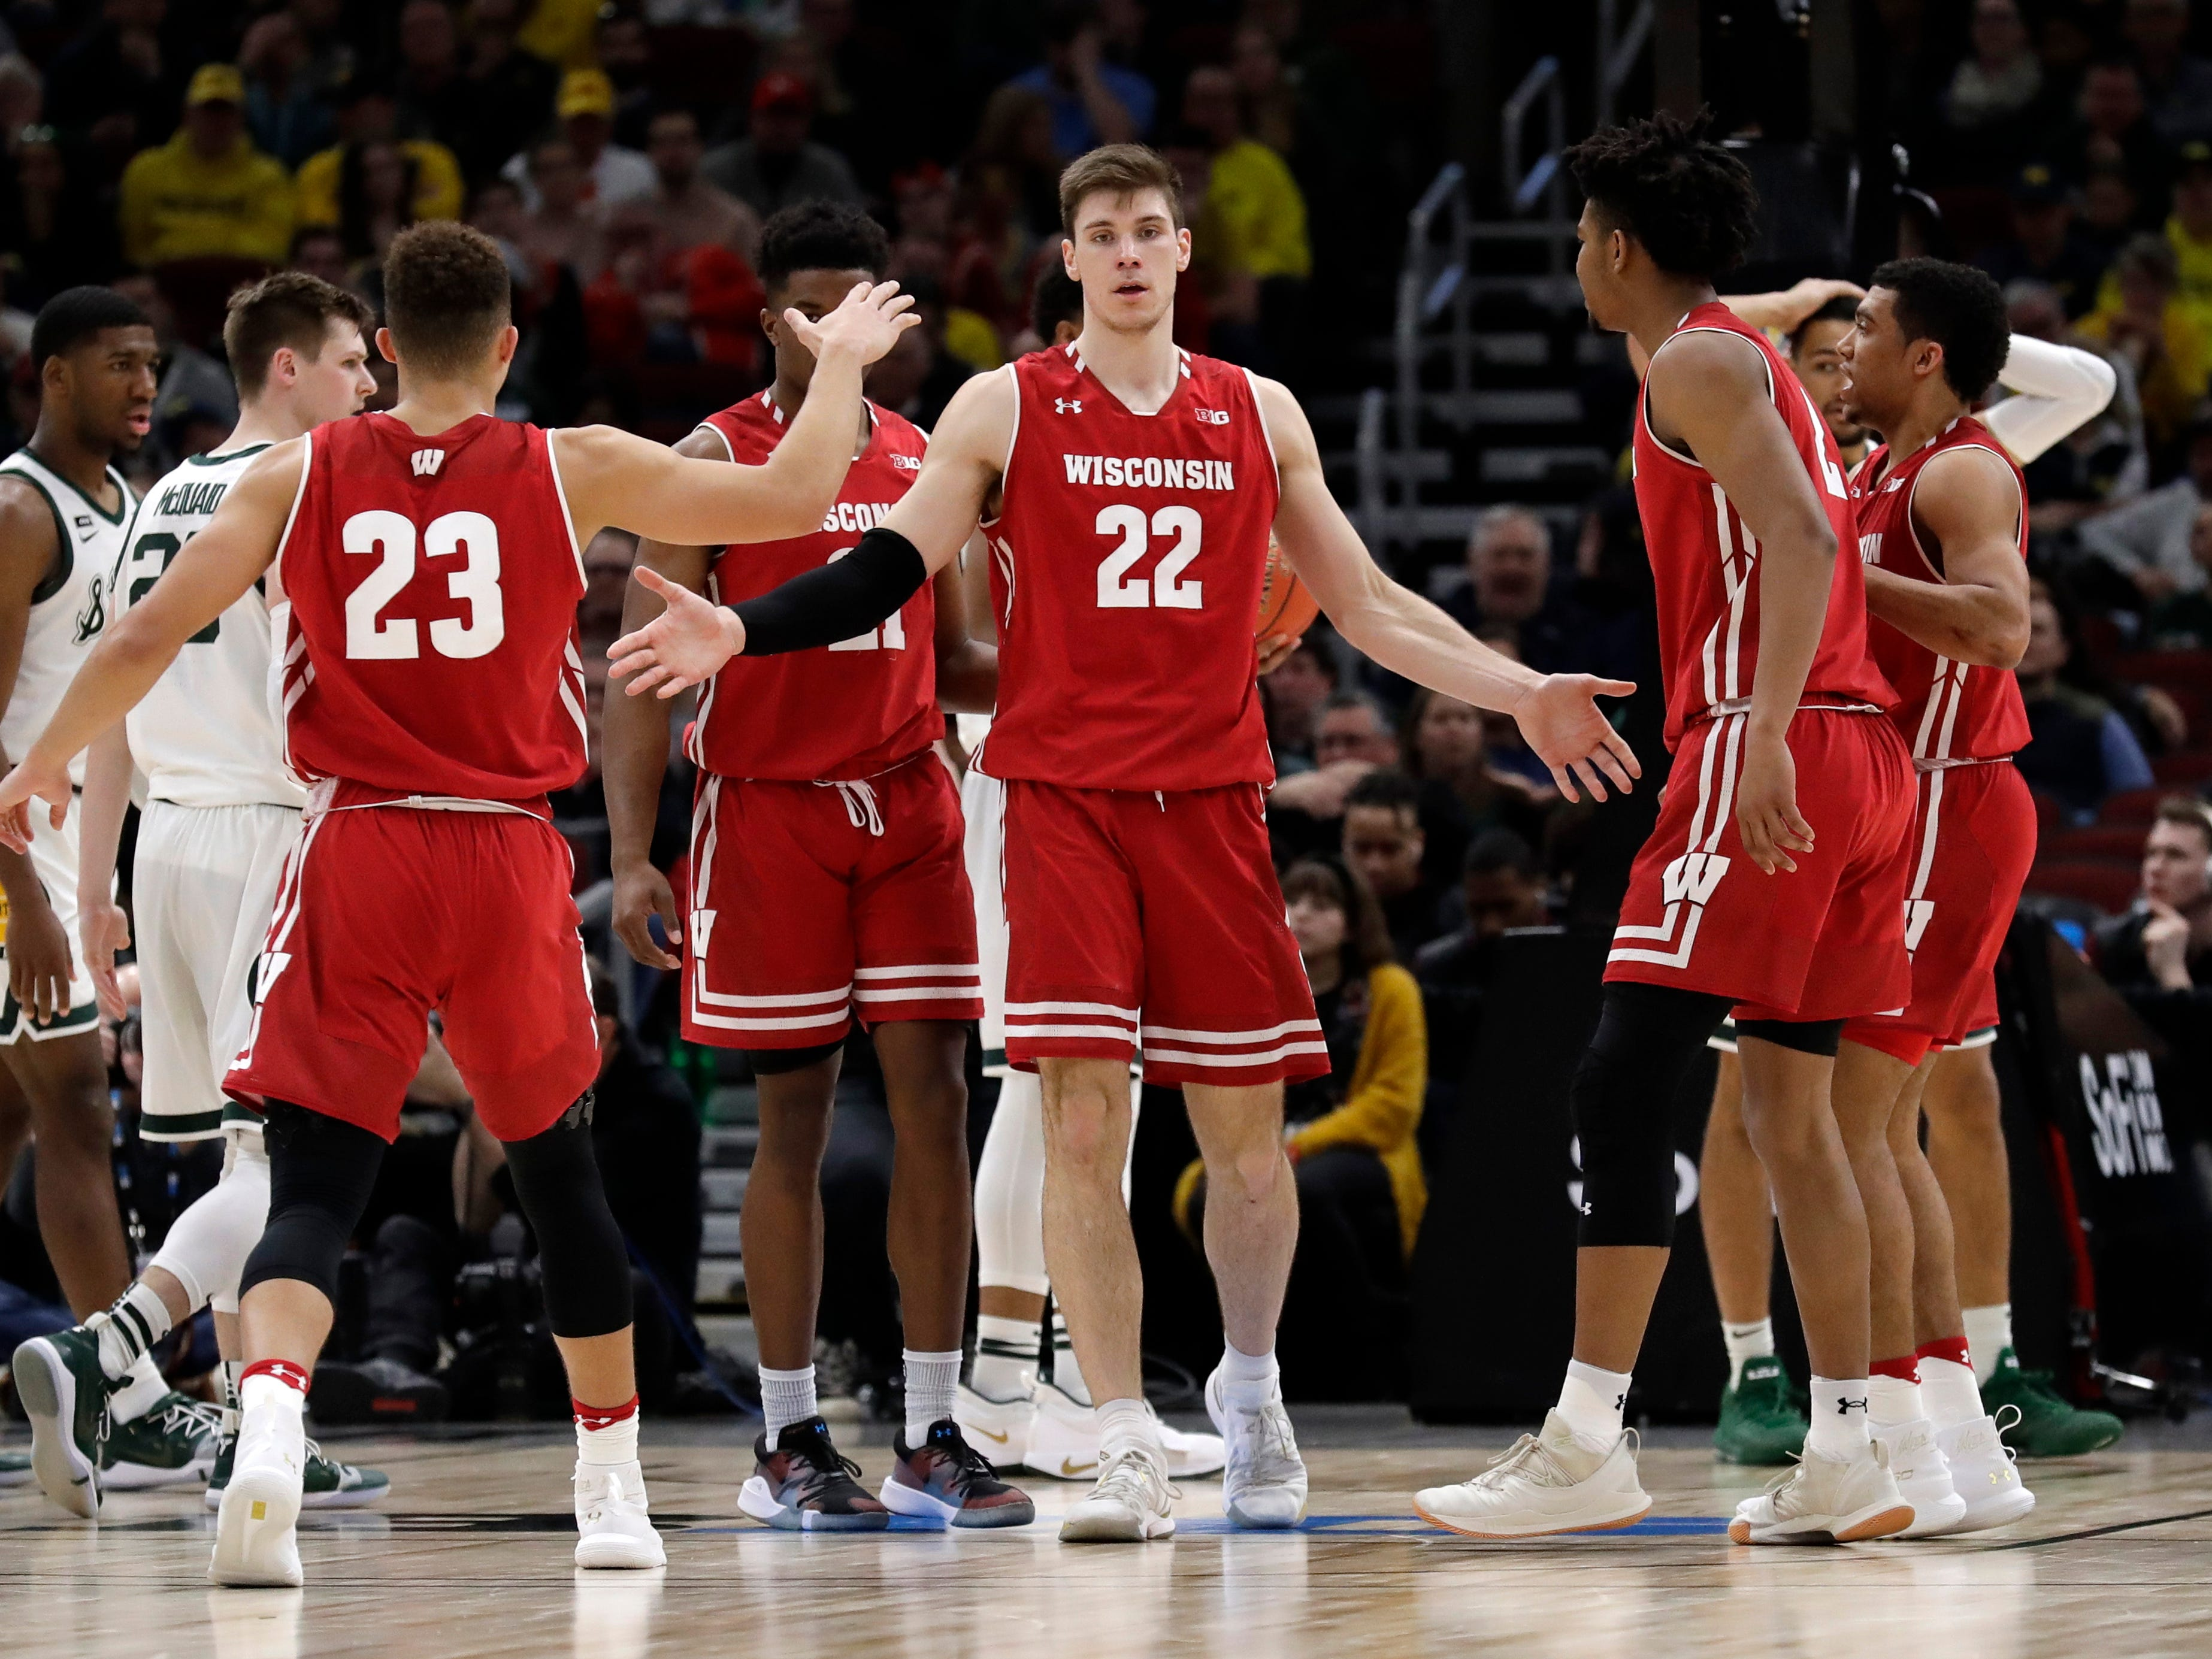 Wisconsin's Ethan Happ celebrates with his teammates after getting fouled during the second half.